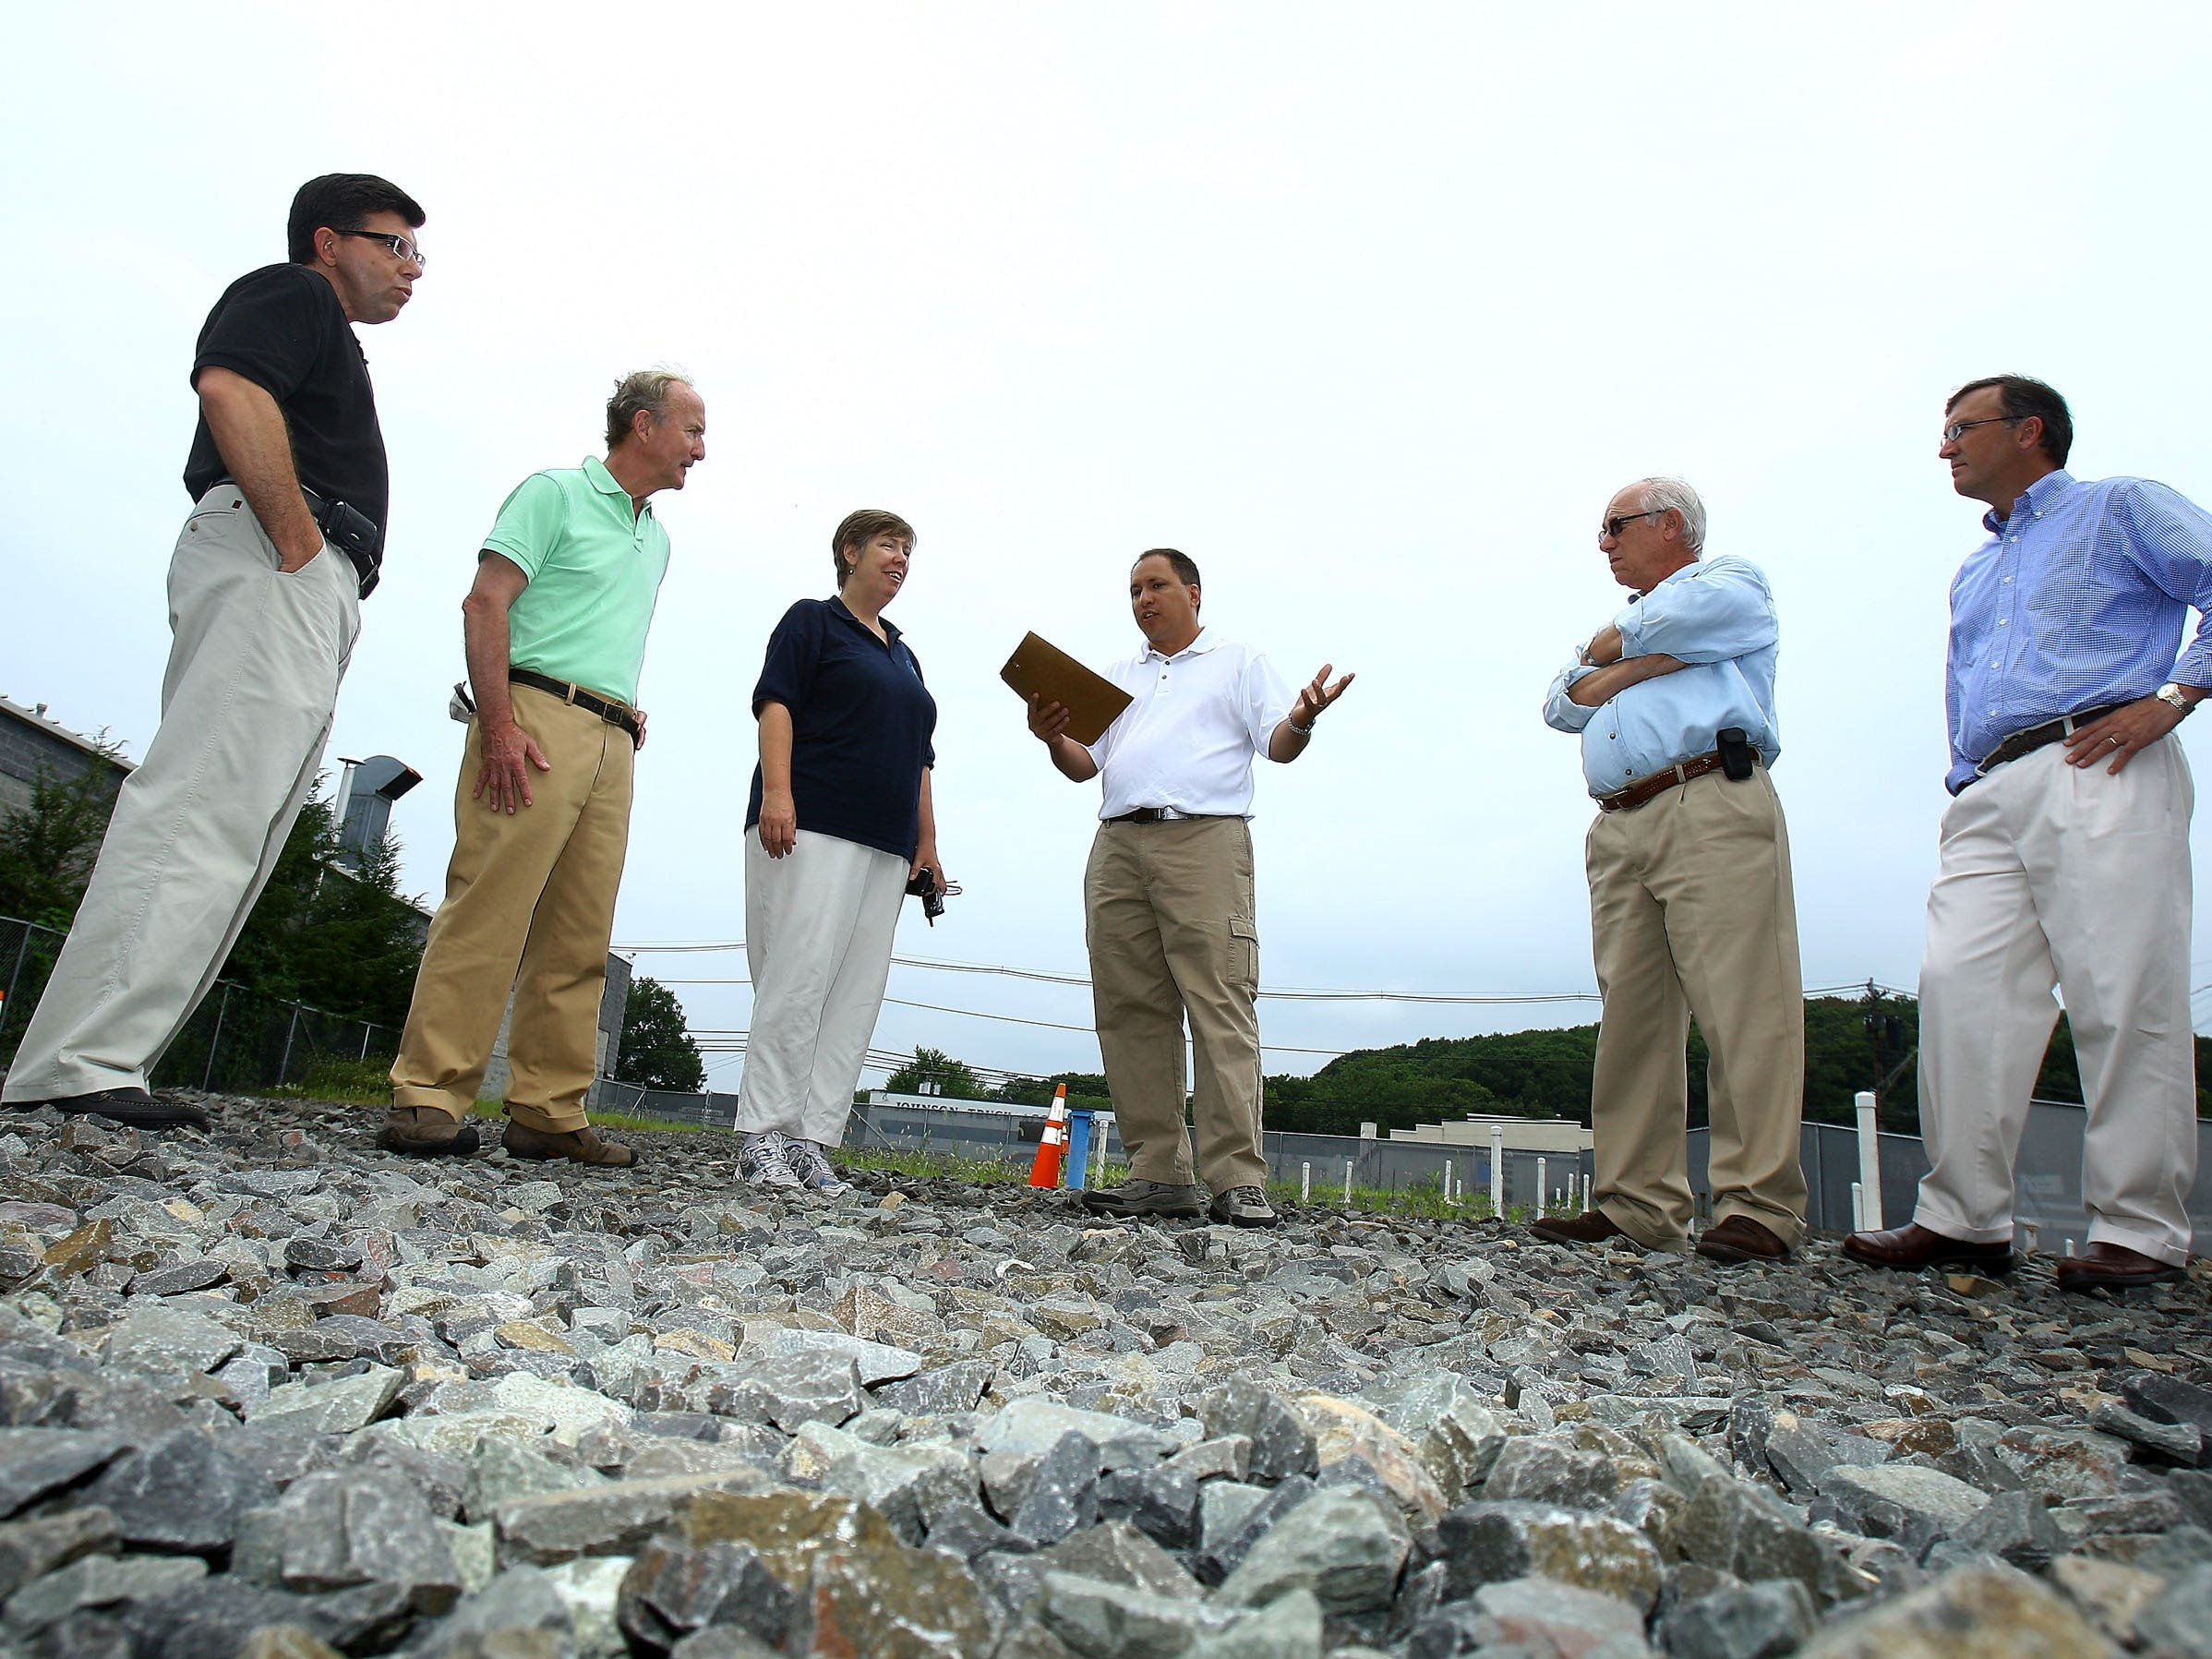 Project Manager for the EPA, Diego Garcia, c, speaks during an annual tour of Superfund sites on Tuesday August 8 in Dover. Asm. Anthony Bucco Jr, l,  Rep. Rodney Frelinghuysen, Judith Enck, Regional Administrator of the US EPA, Len Romino and Steve Maybury of the NJ DEP get a look at the Dover Municipal Well No. 4 